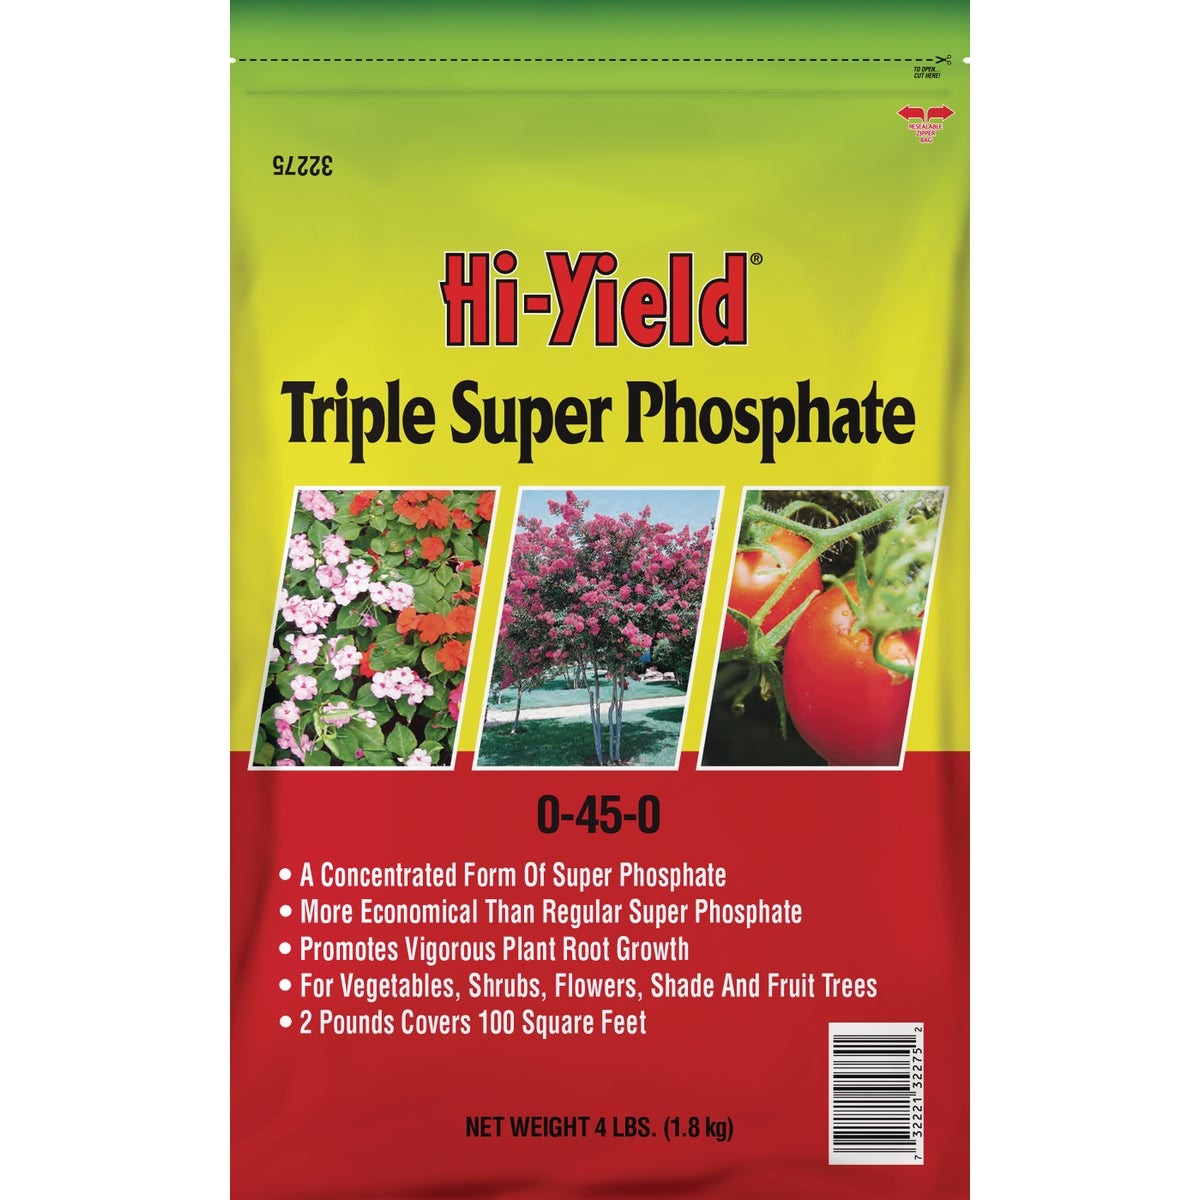 4LB TRIPLE SPR PHOSPHATE - 32275 by Vpg Fertilome